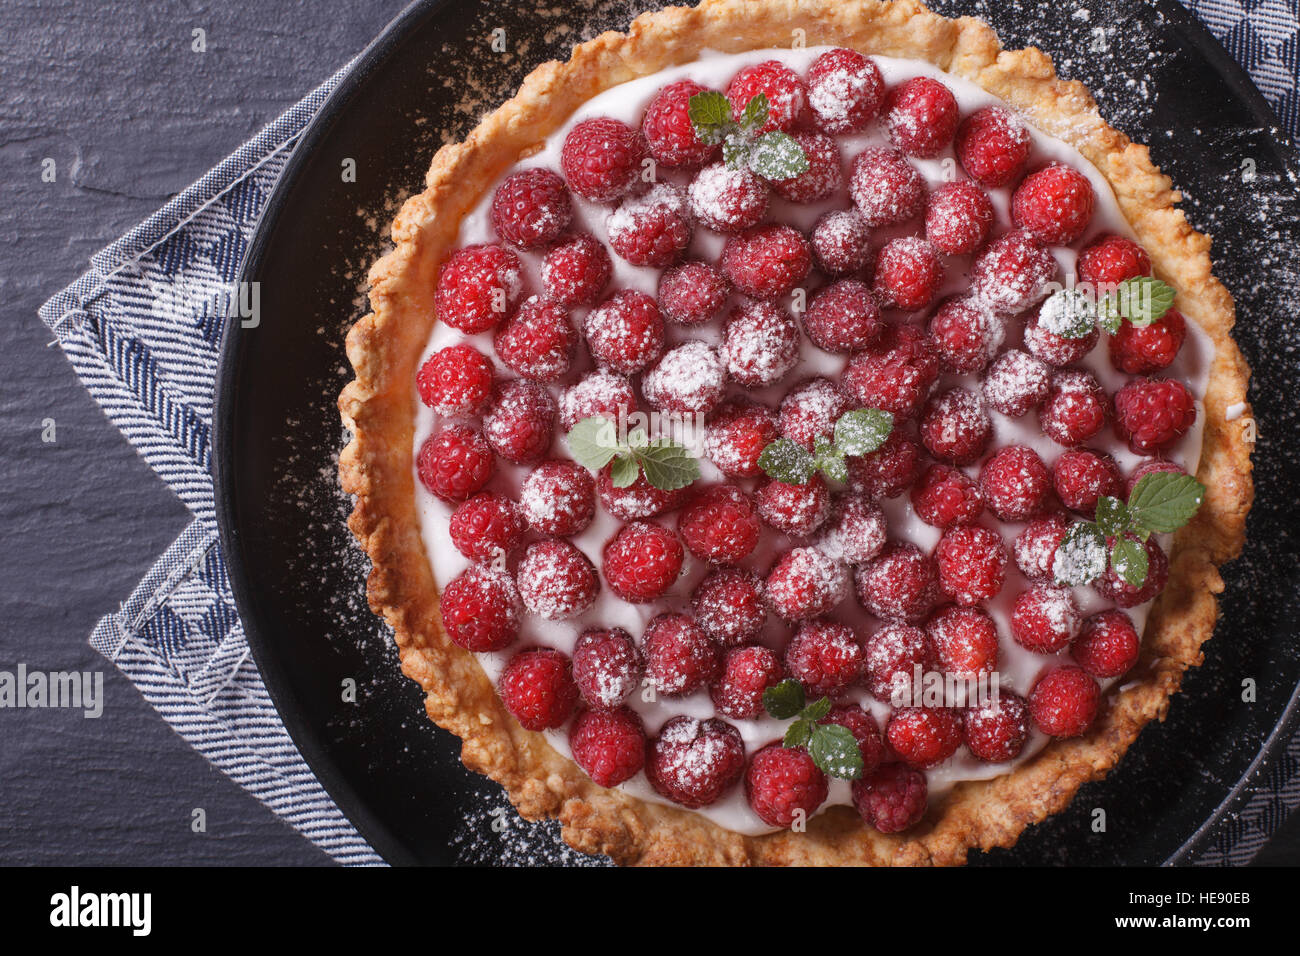 Gourmet raspberry tart with whipped cream on a plate close-up horizontal view from above - Stock Image